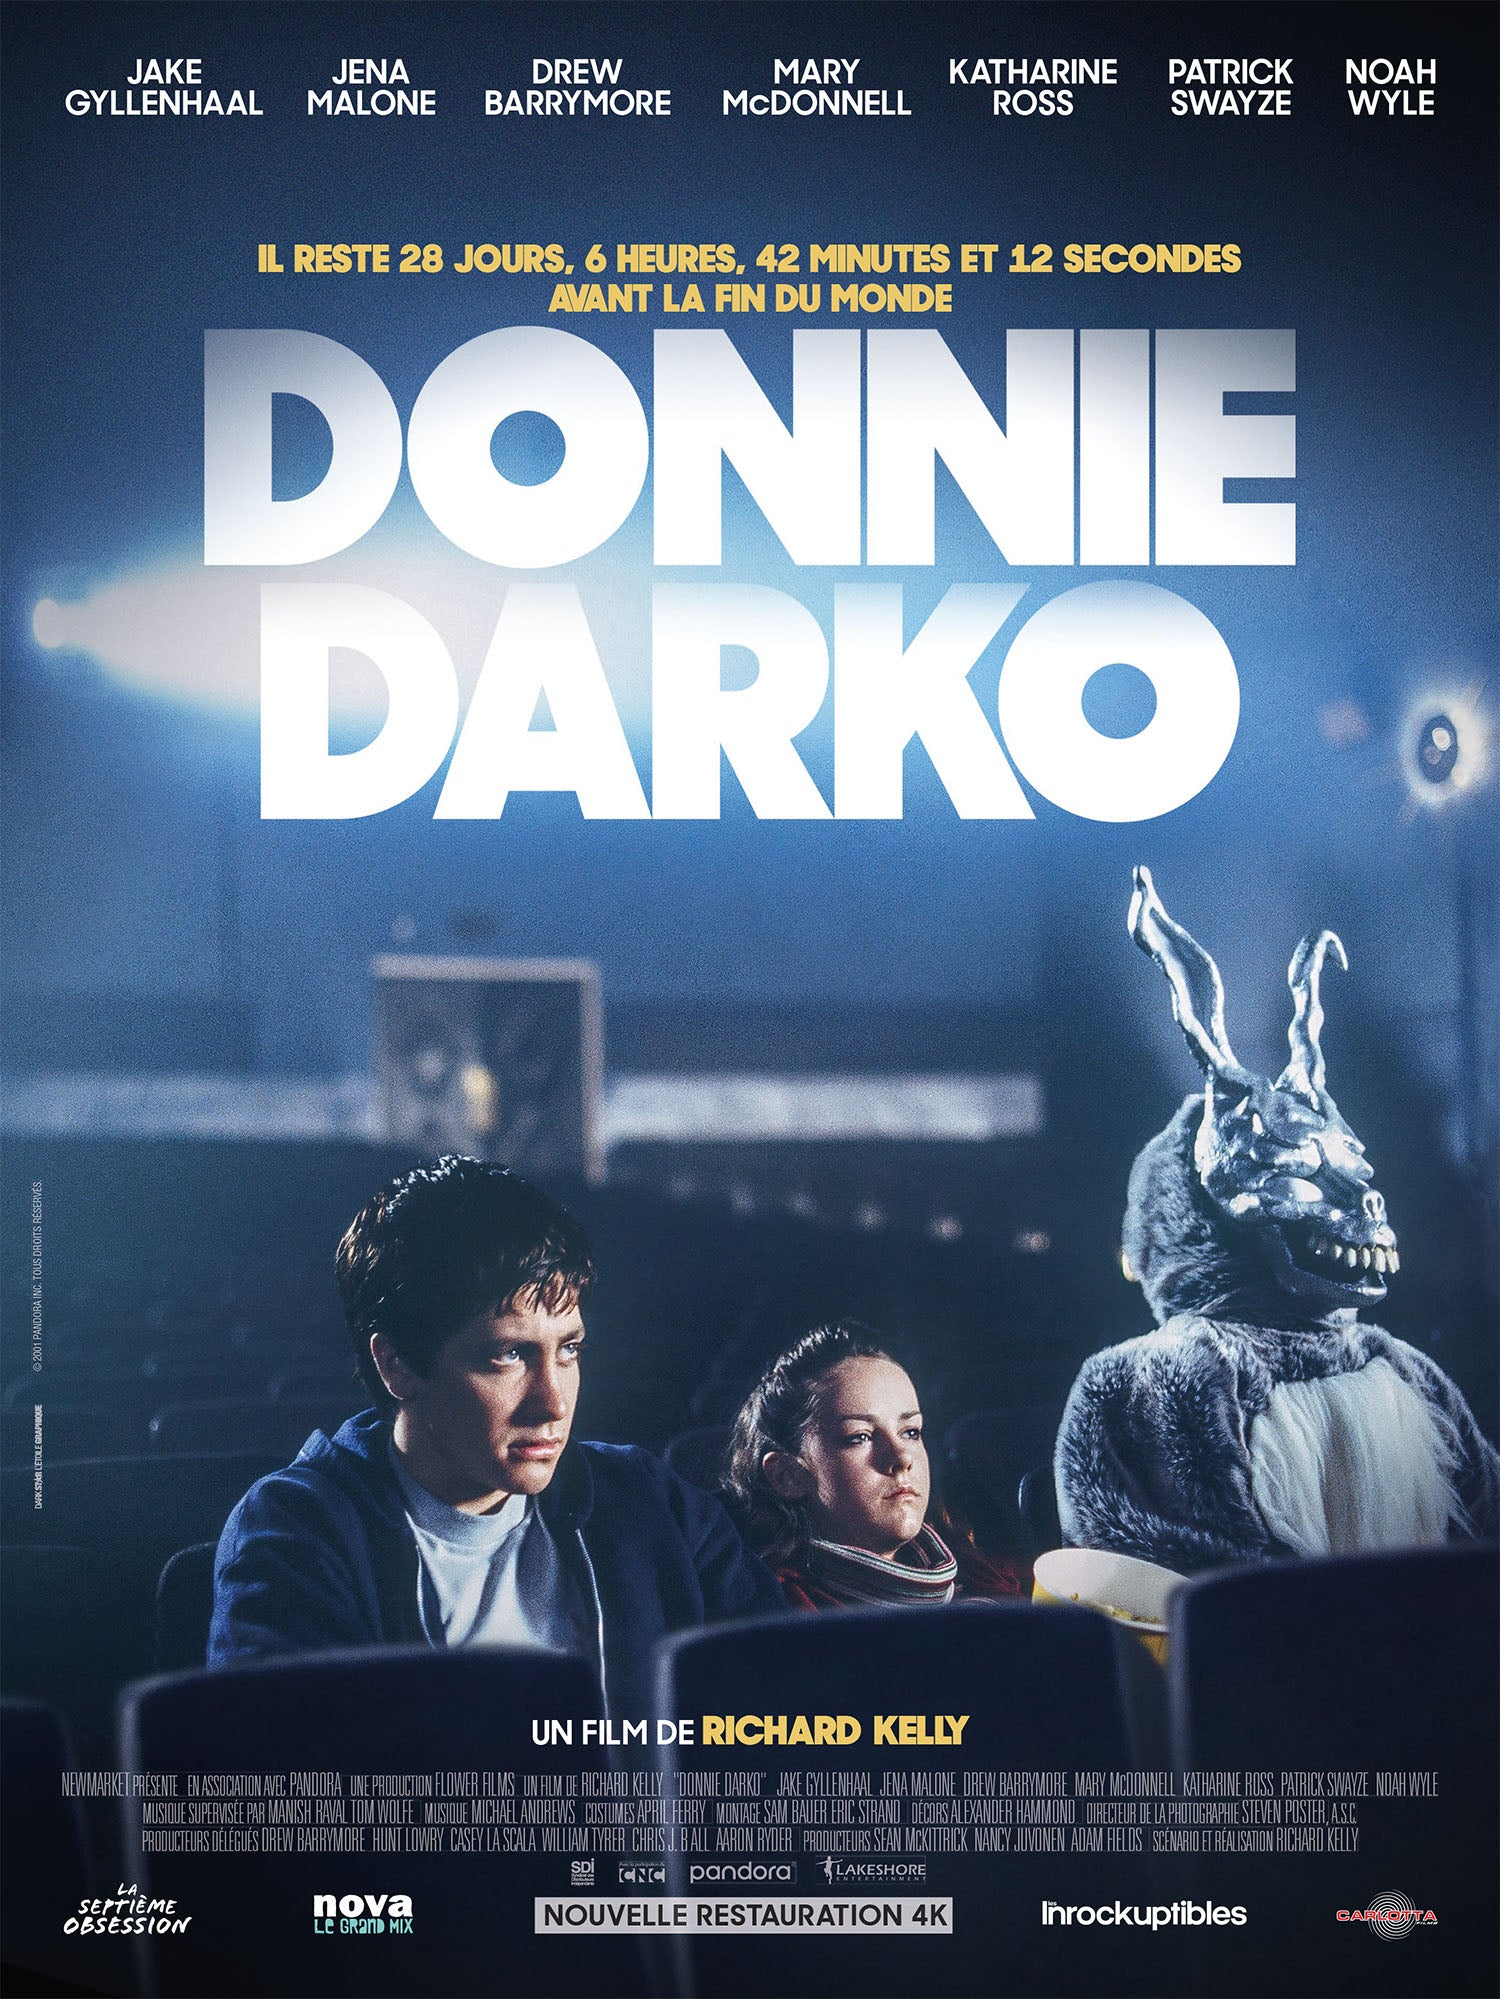 Donnie Darko - Affiche - CARLOTTA FILMS - La Boutique